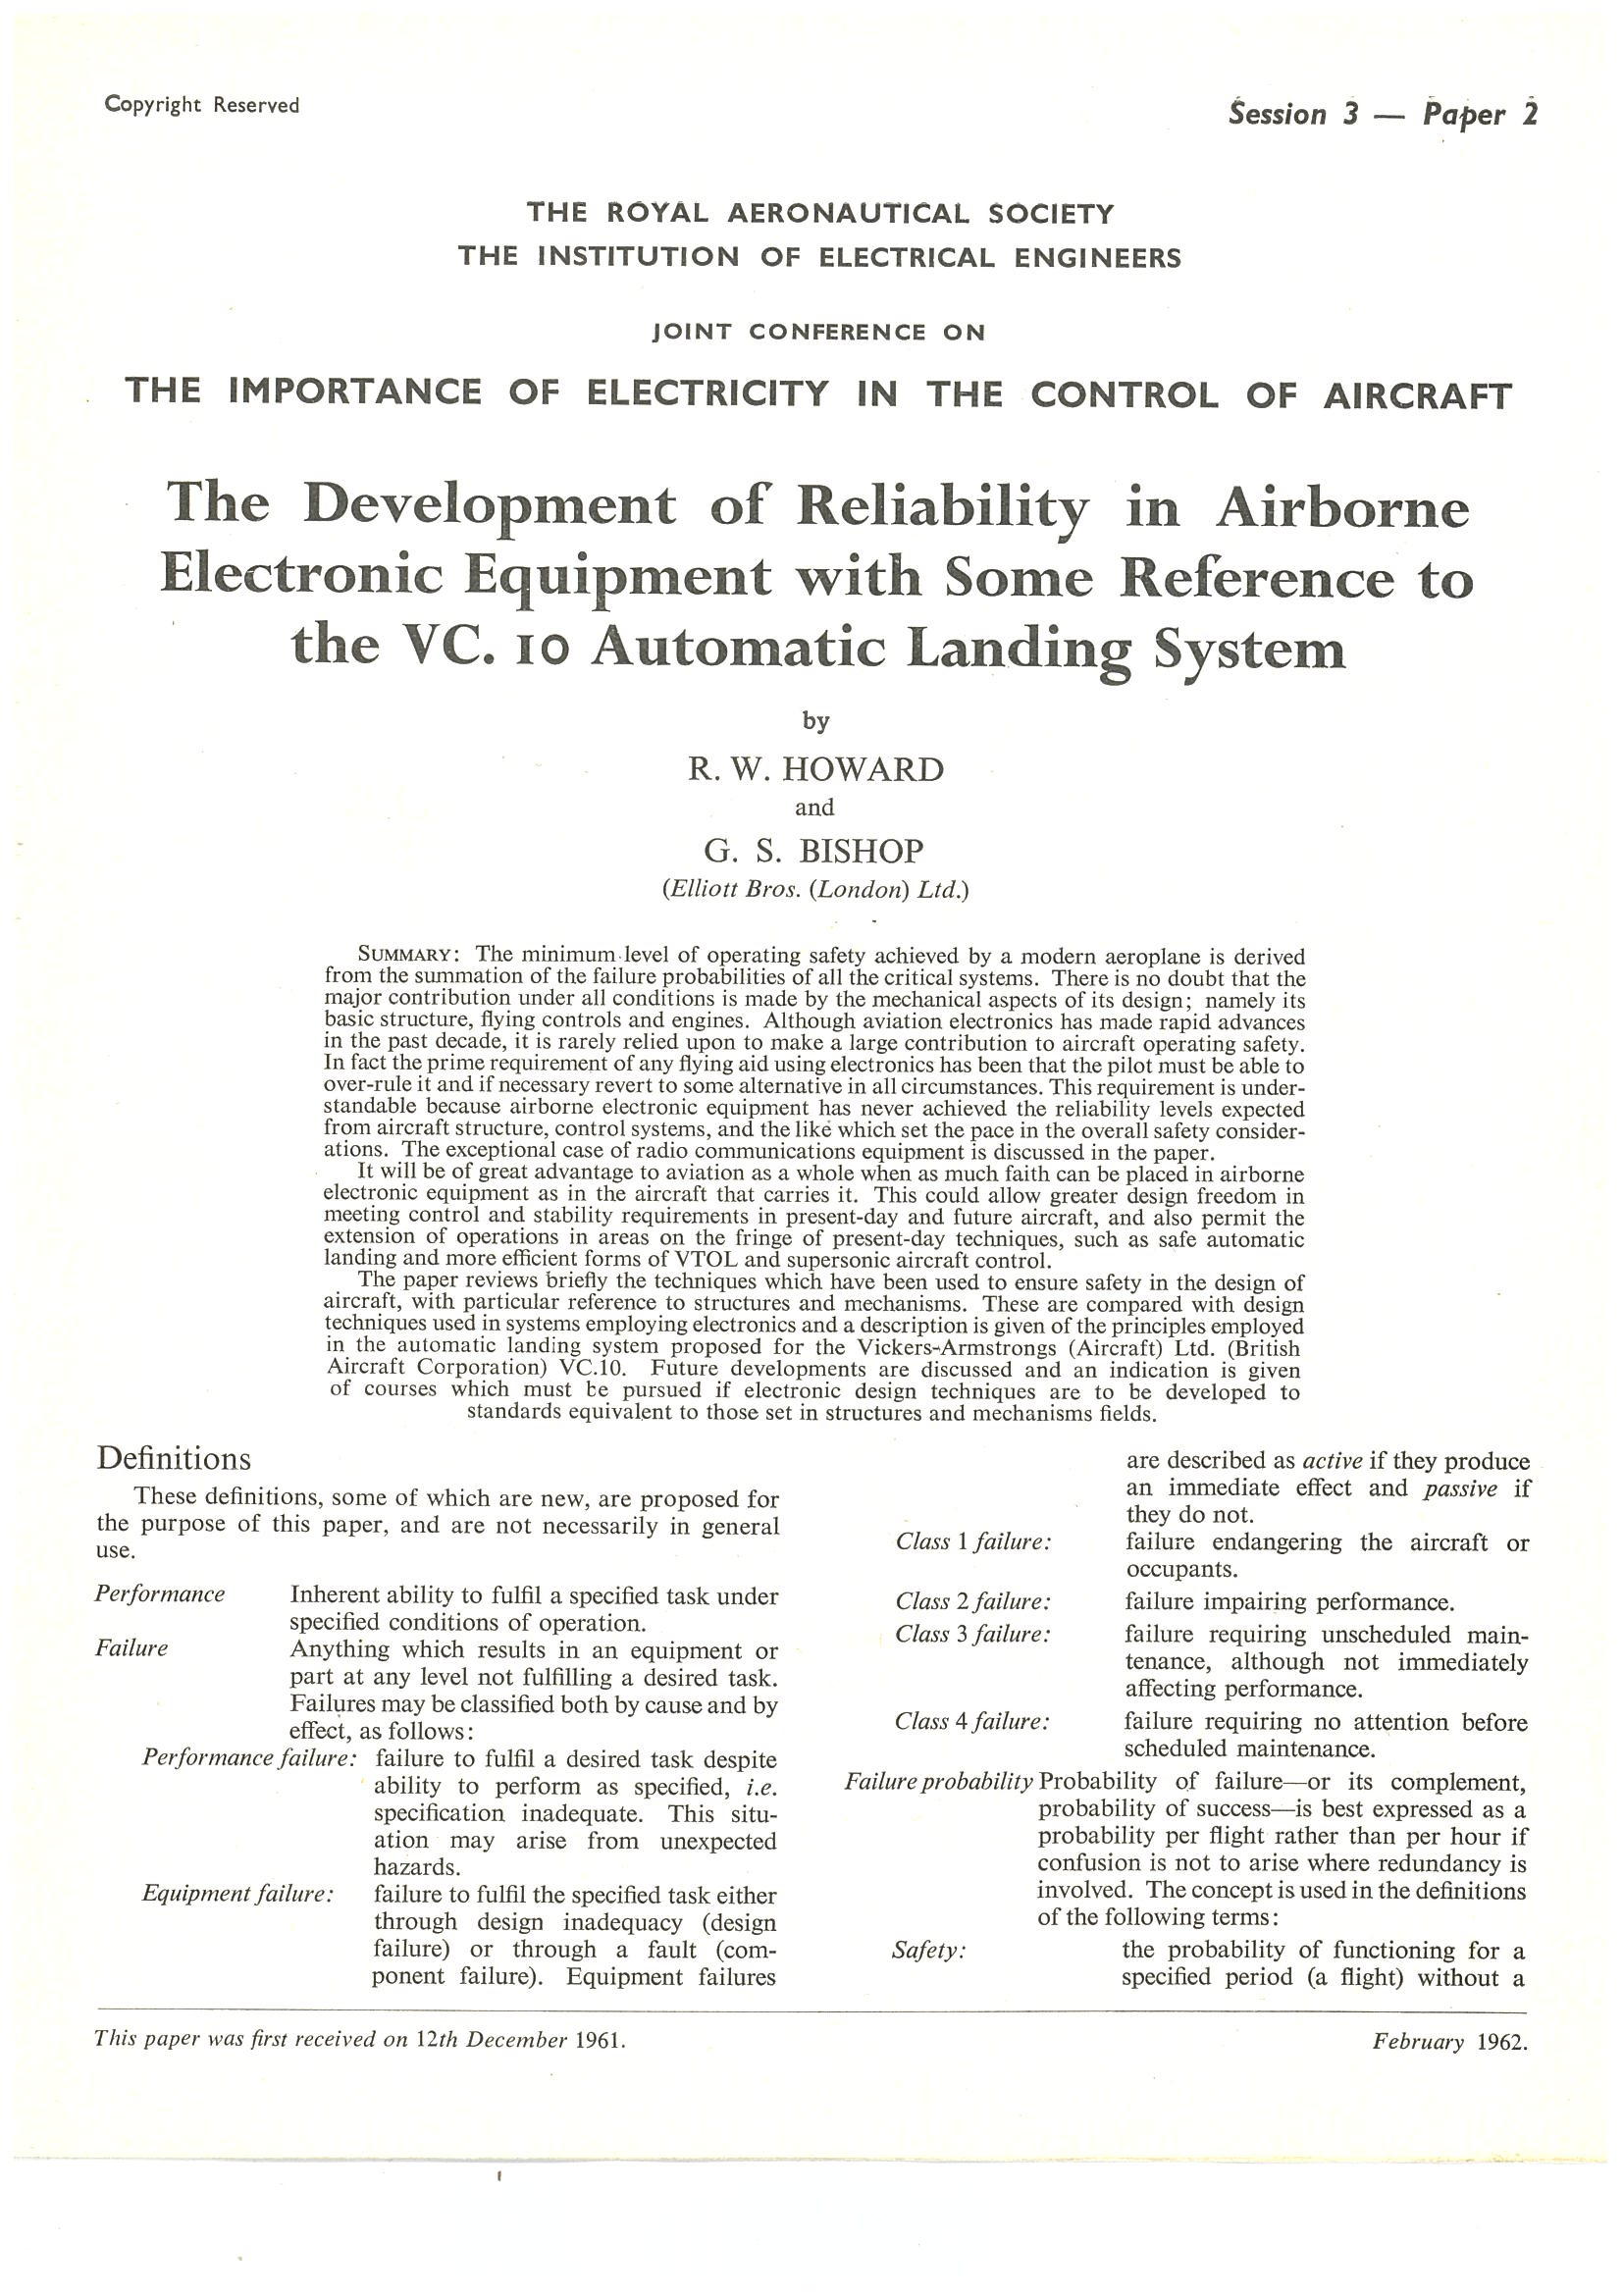 The Development of Reliability in Airborne Electronic Equipment with Reference to VC10 Automatic Landing System